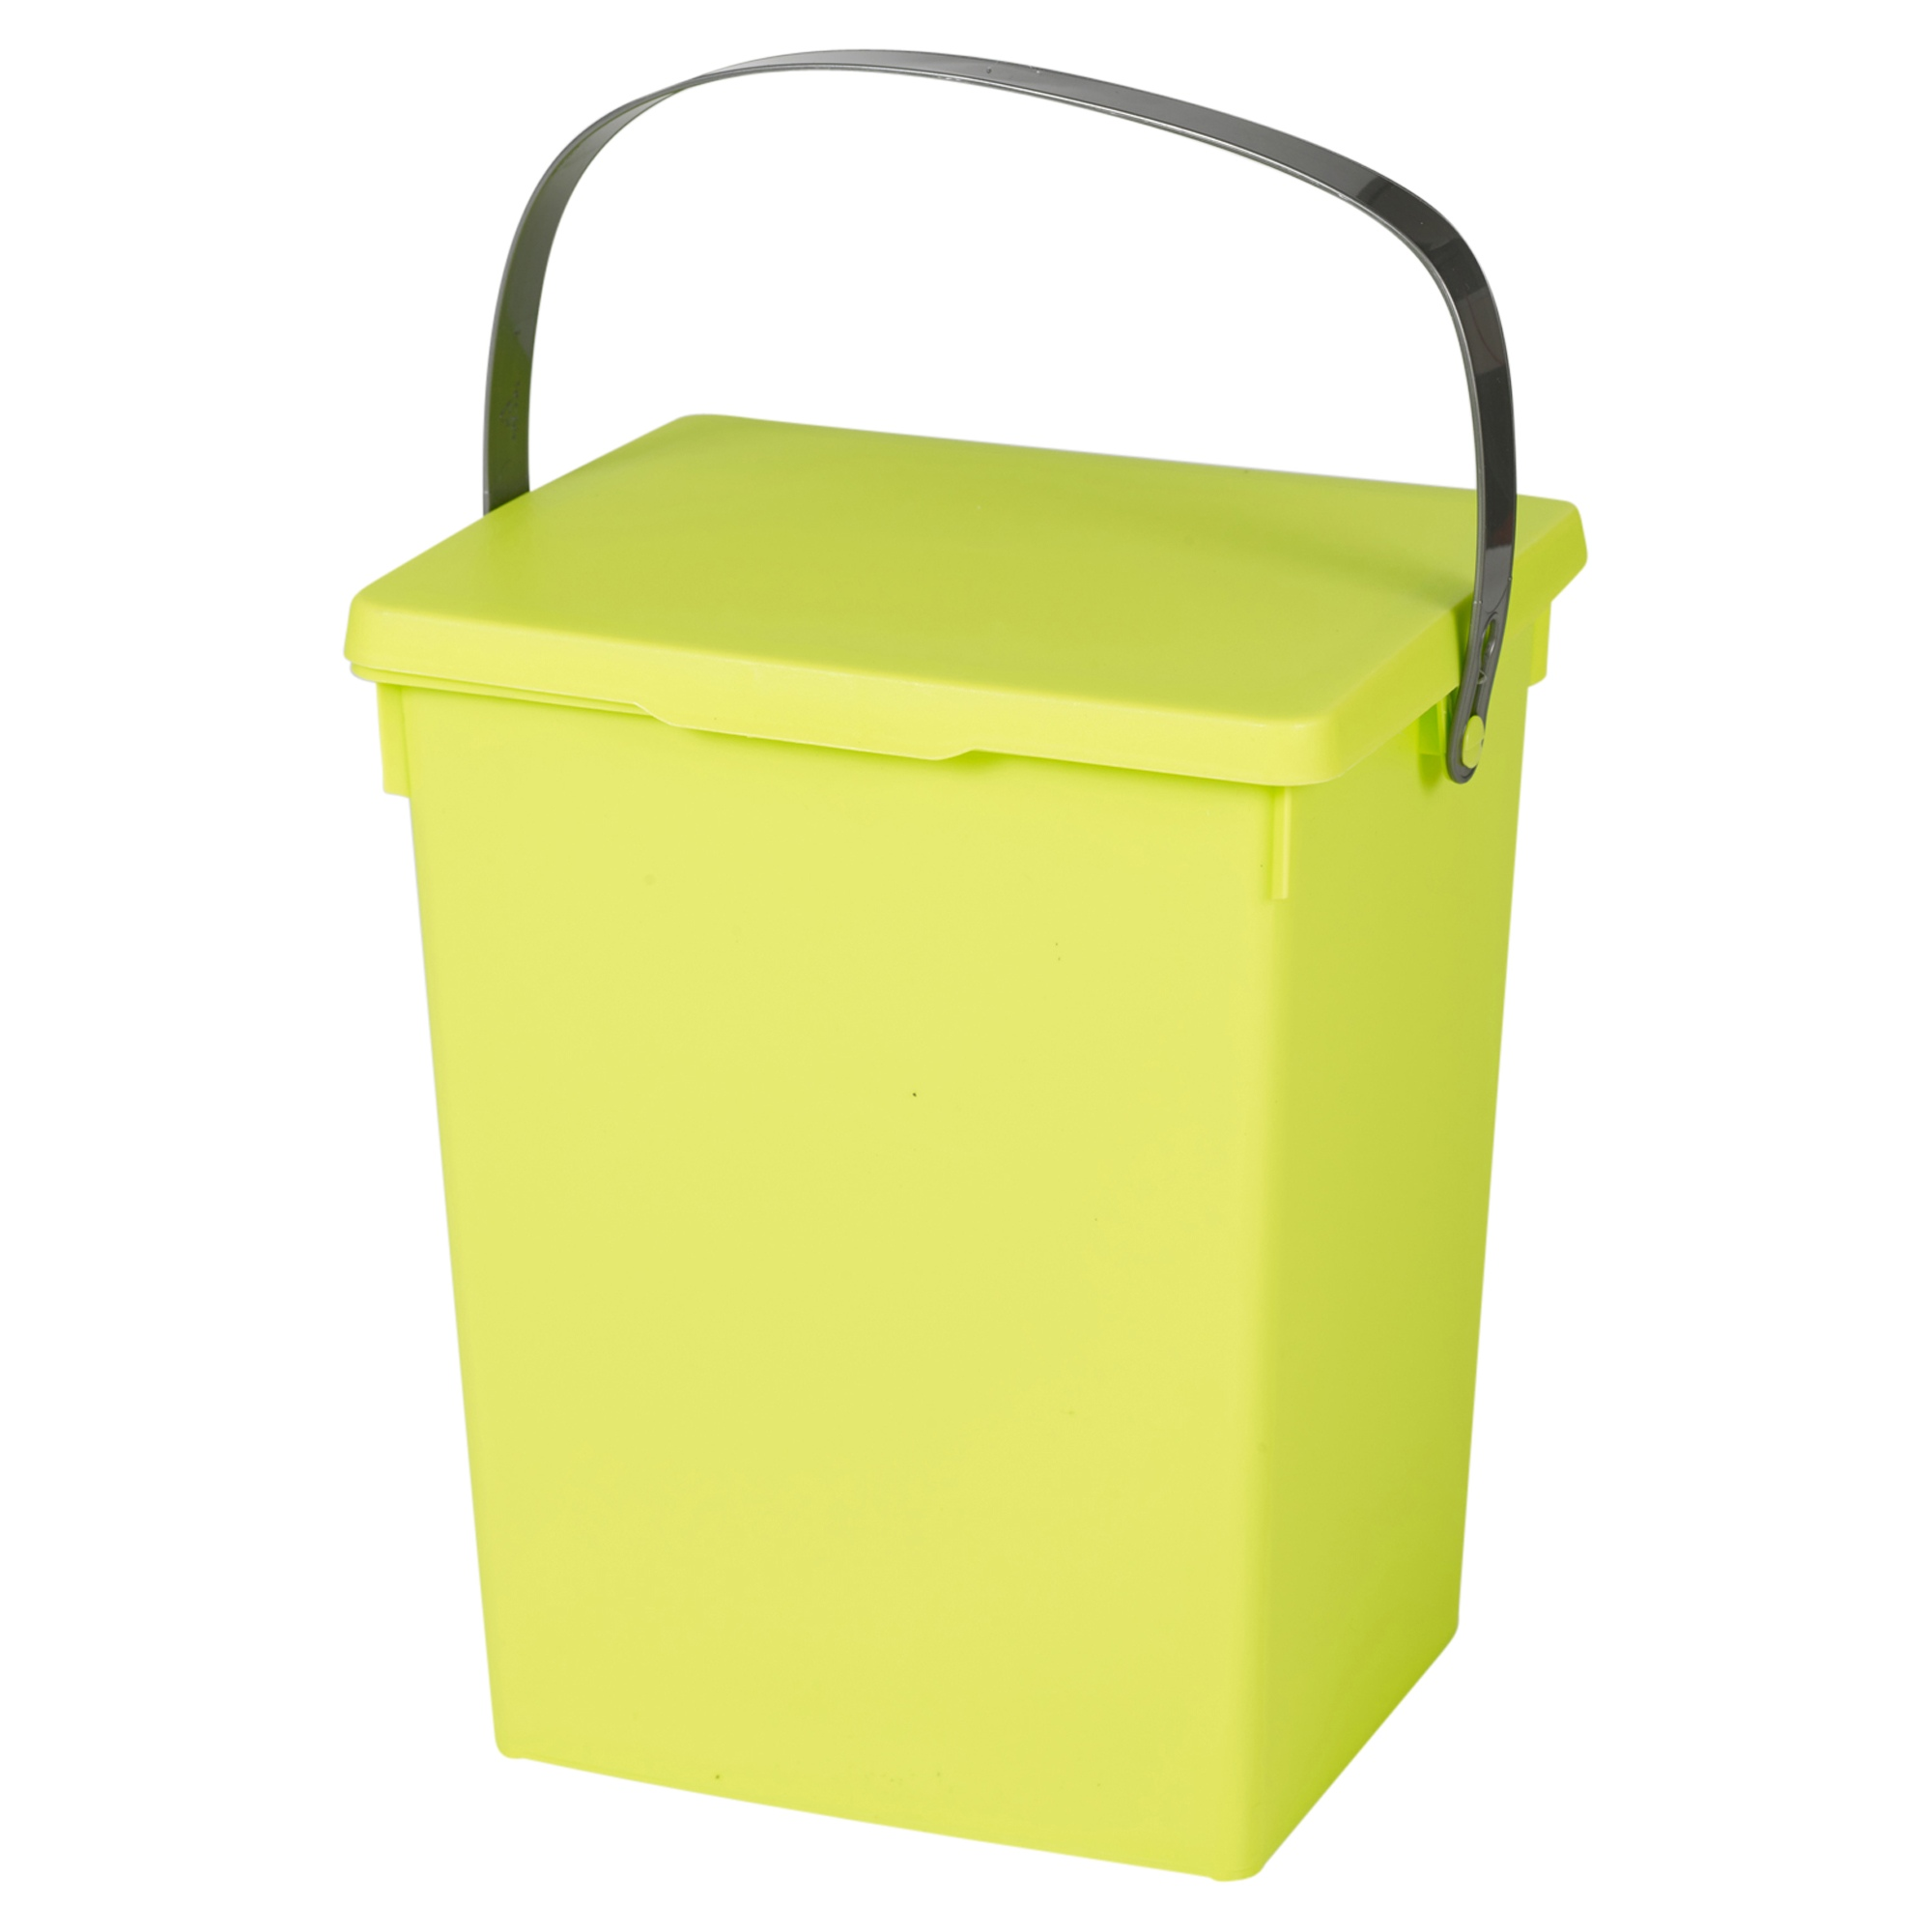 5 Litre Small Table Top Food Kitchen Recycling Bin Worktop